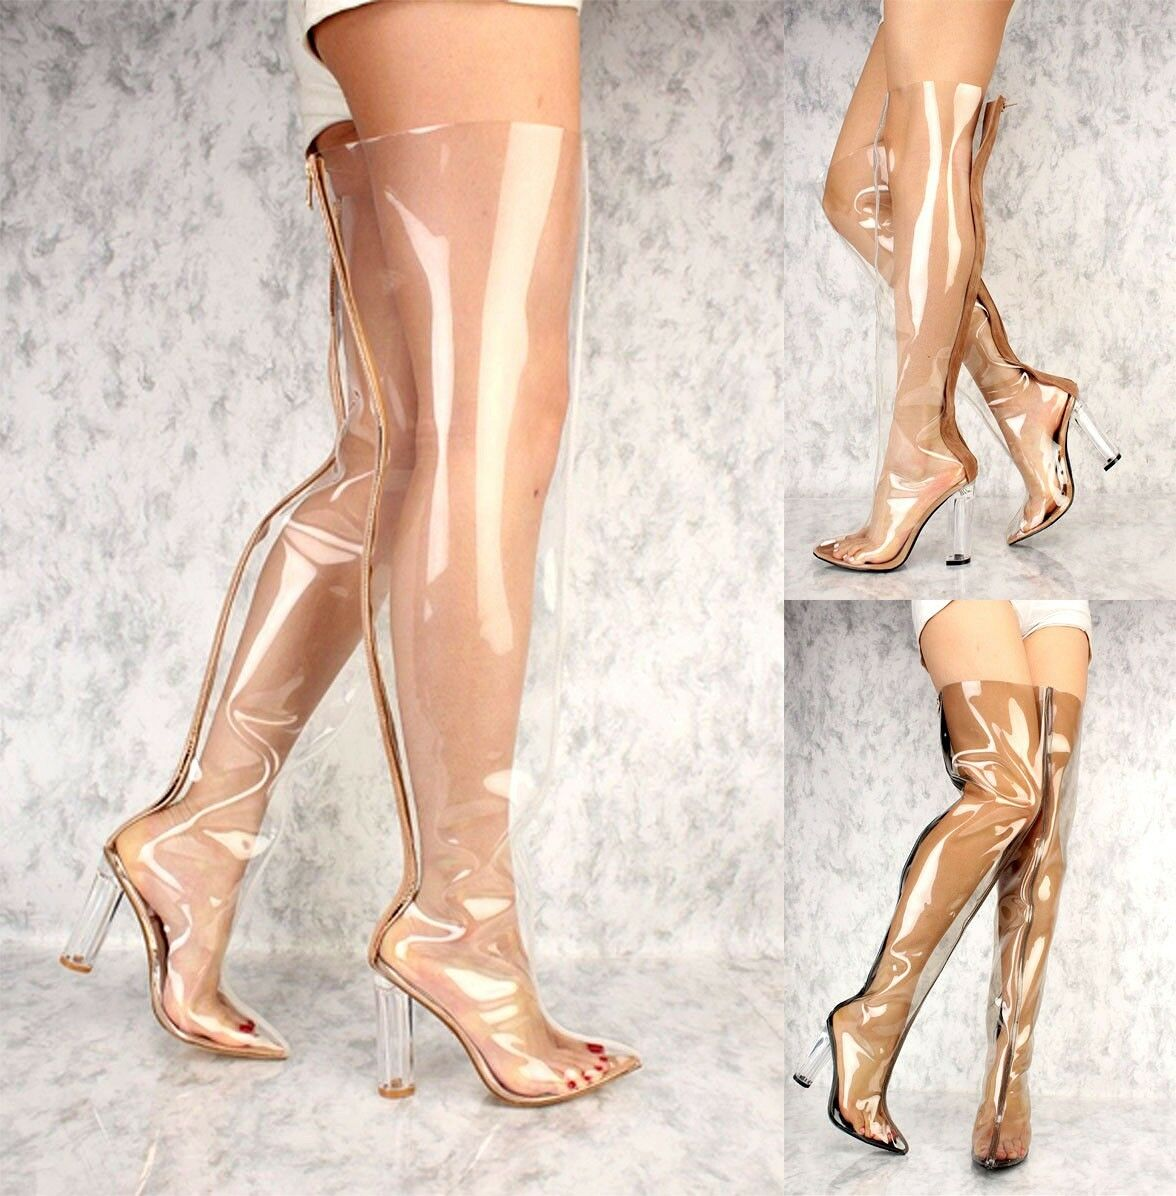 LOT CLEAR schwarz Gold NUDE POINTY TOE CLEAR CHUNKY HEEL THIGH HIGH Stiefel PATENT